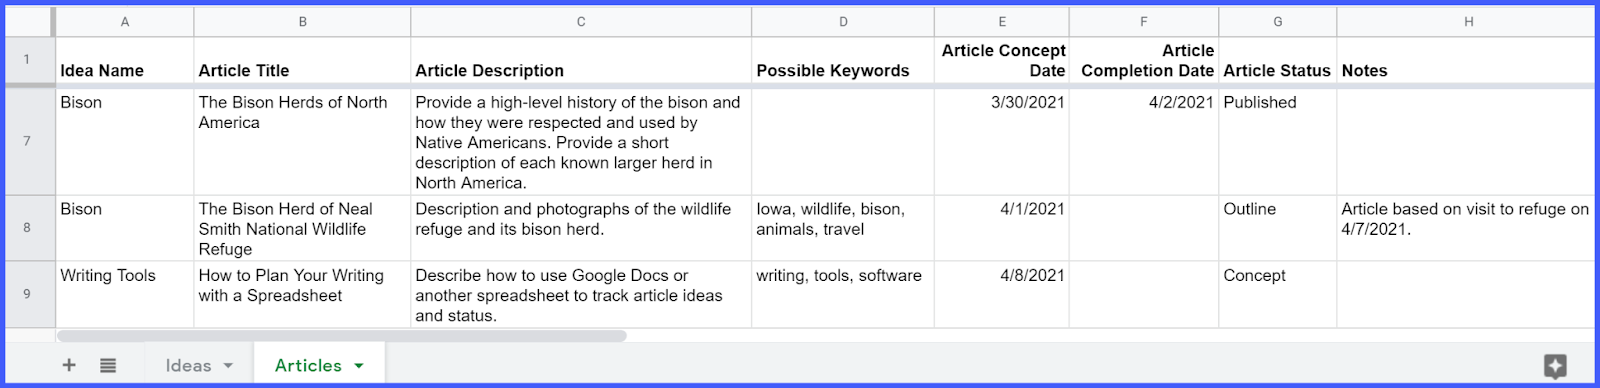 Articles tracking worksheet.